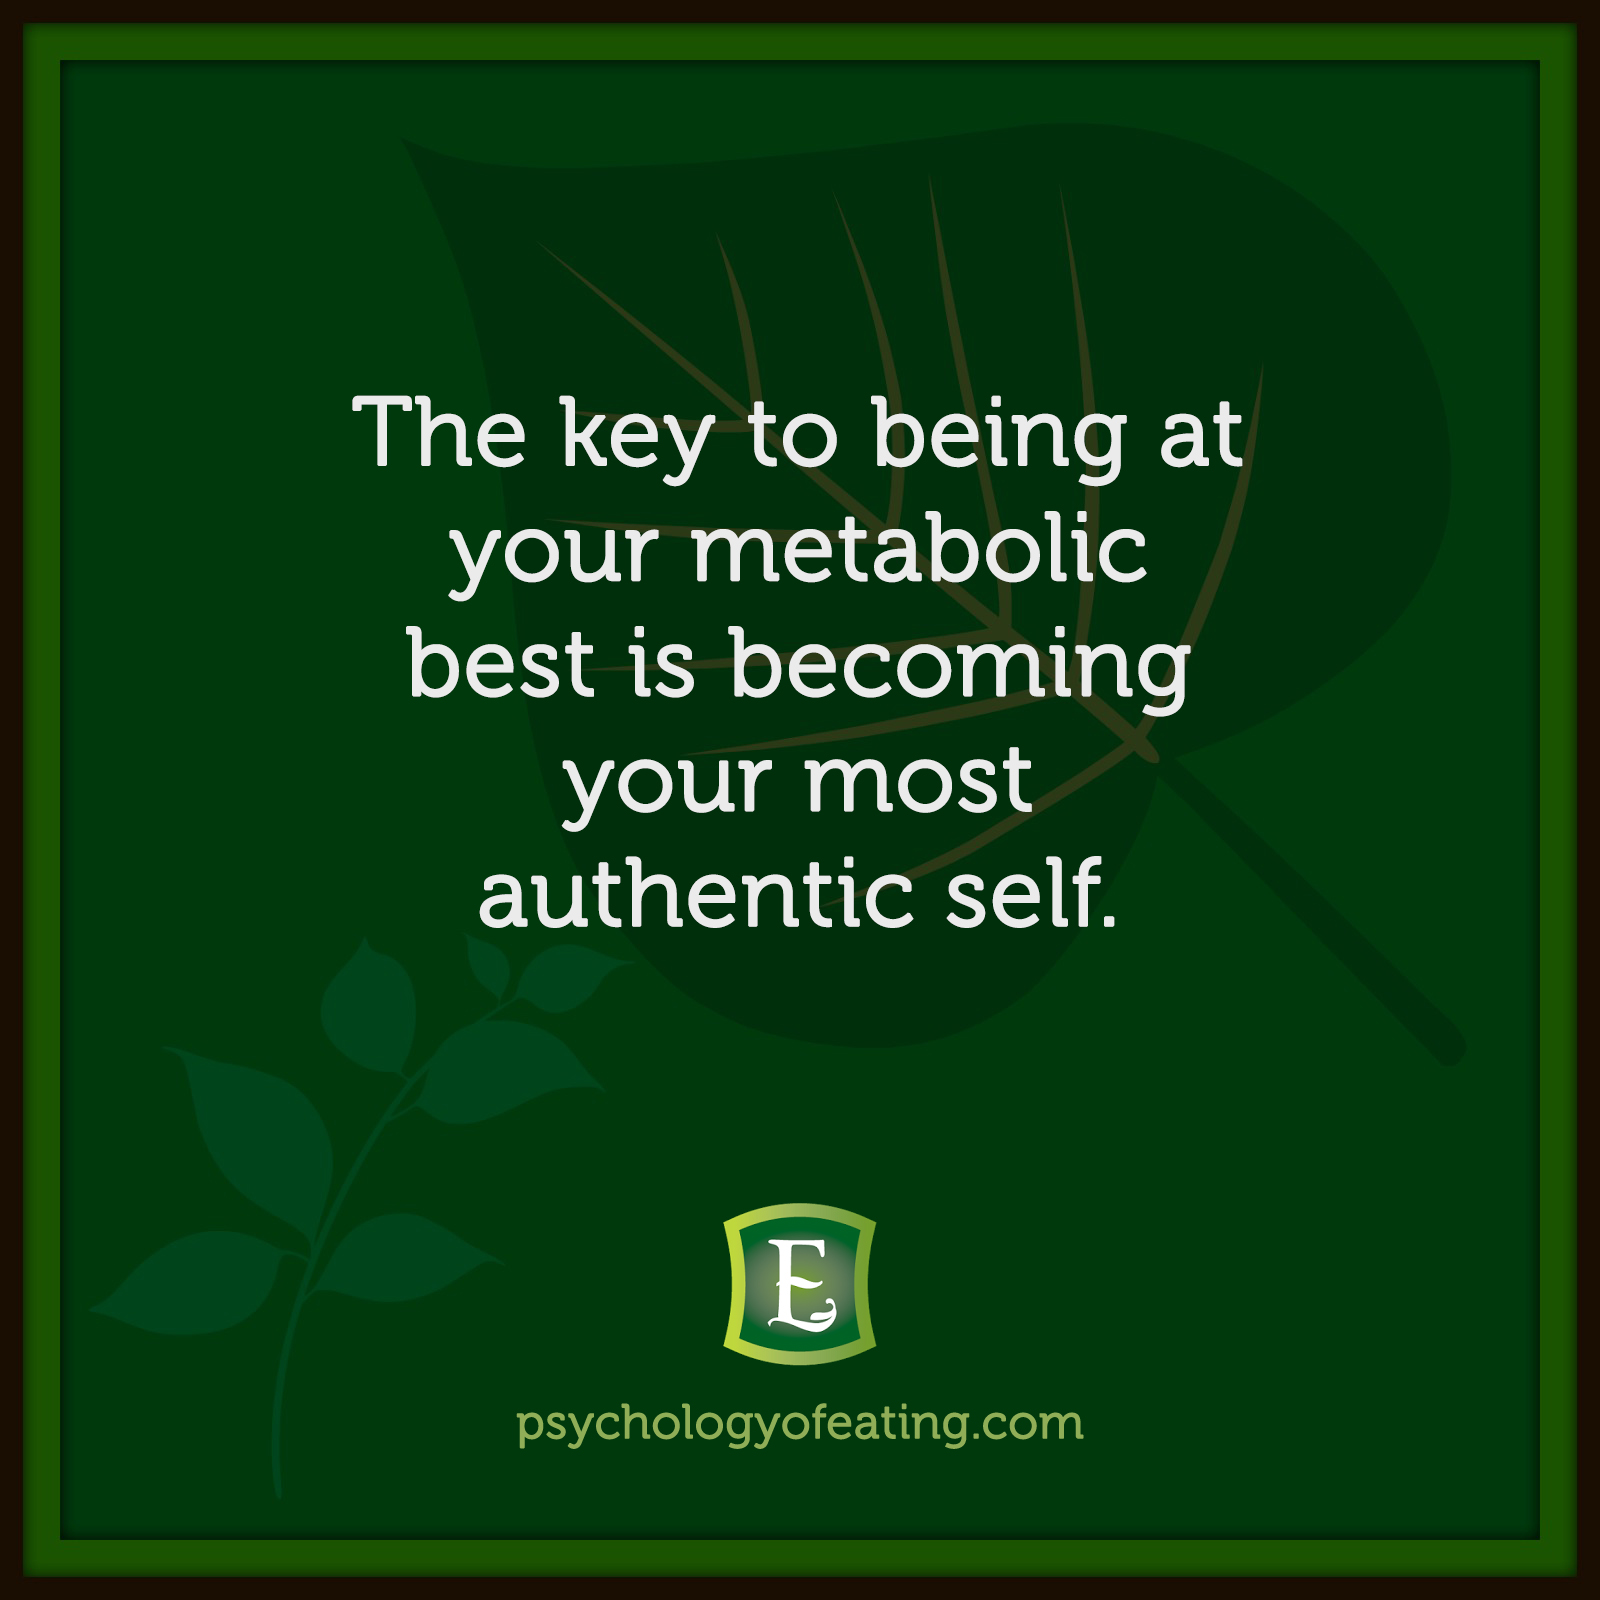 The key to being at your metabolic best is becoming your most authentic self  #health #nutrition #eatingpsychology #IPE